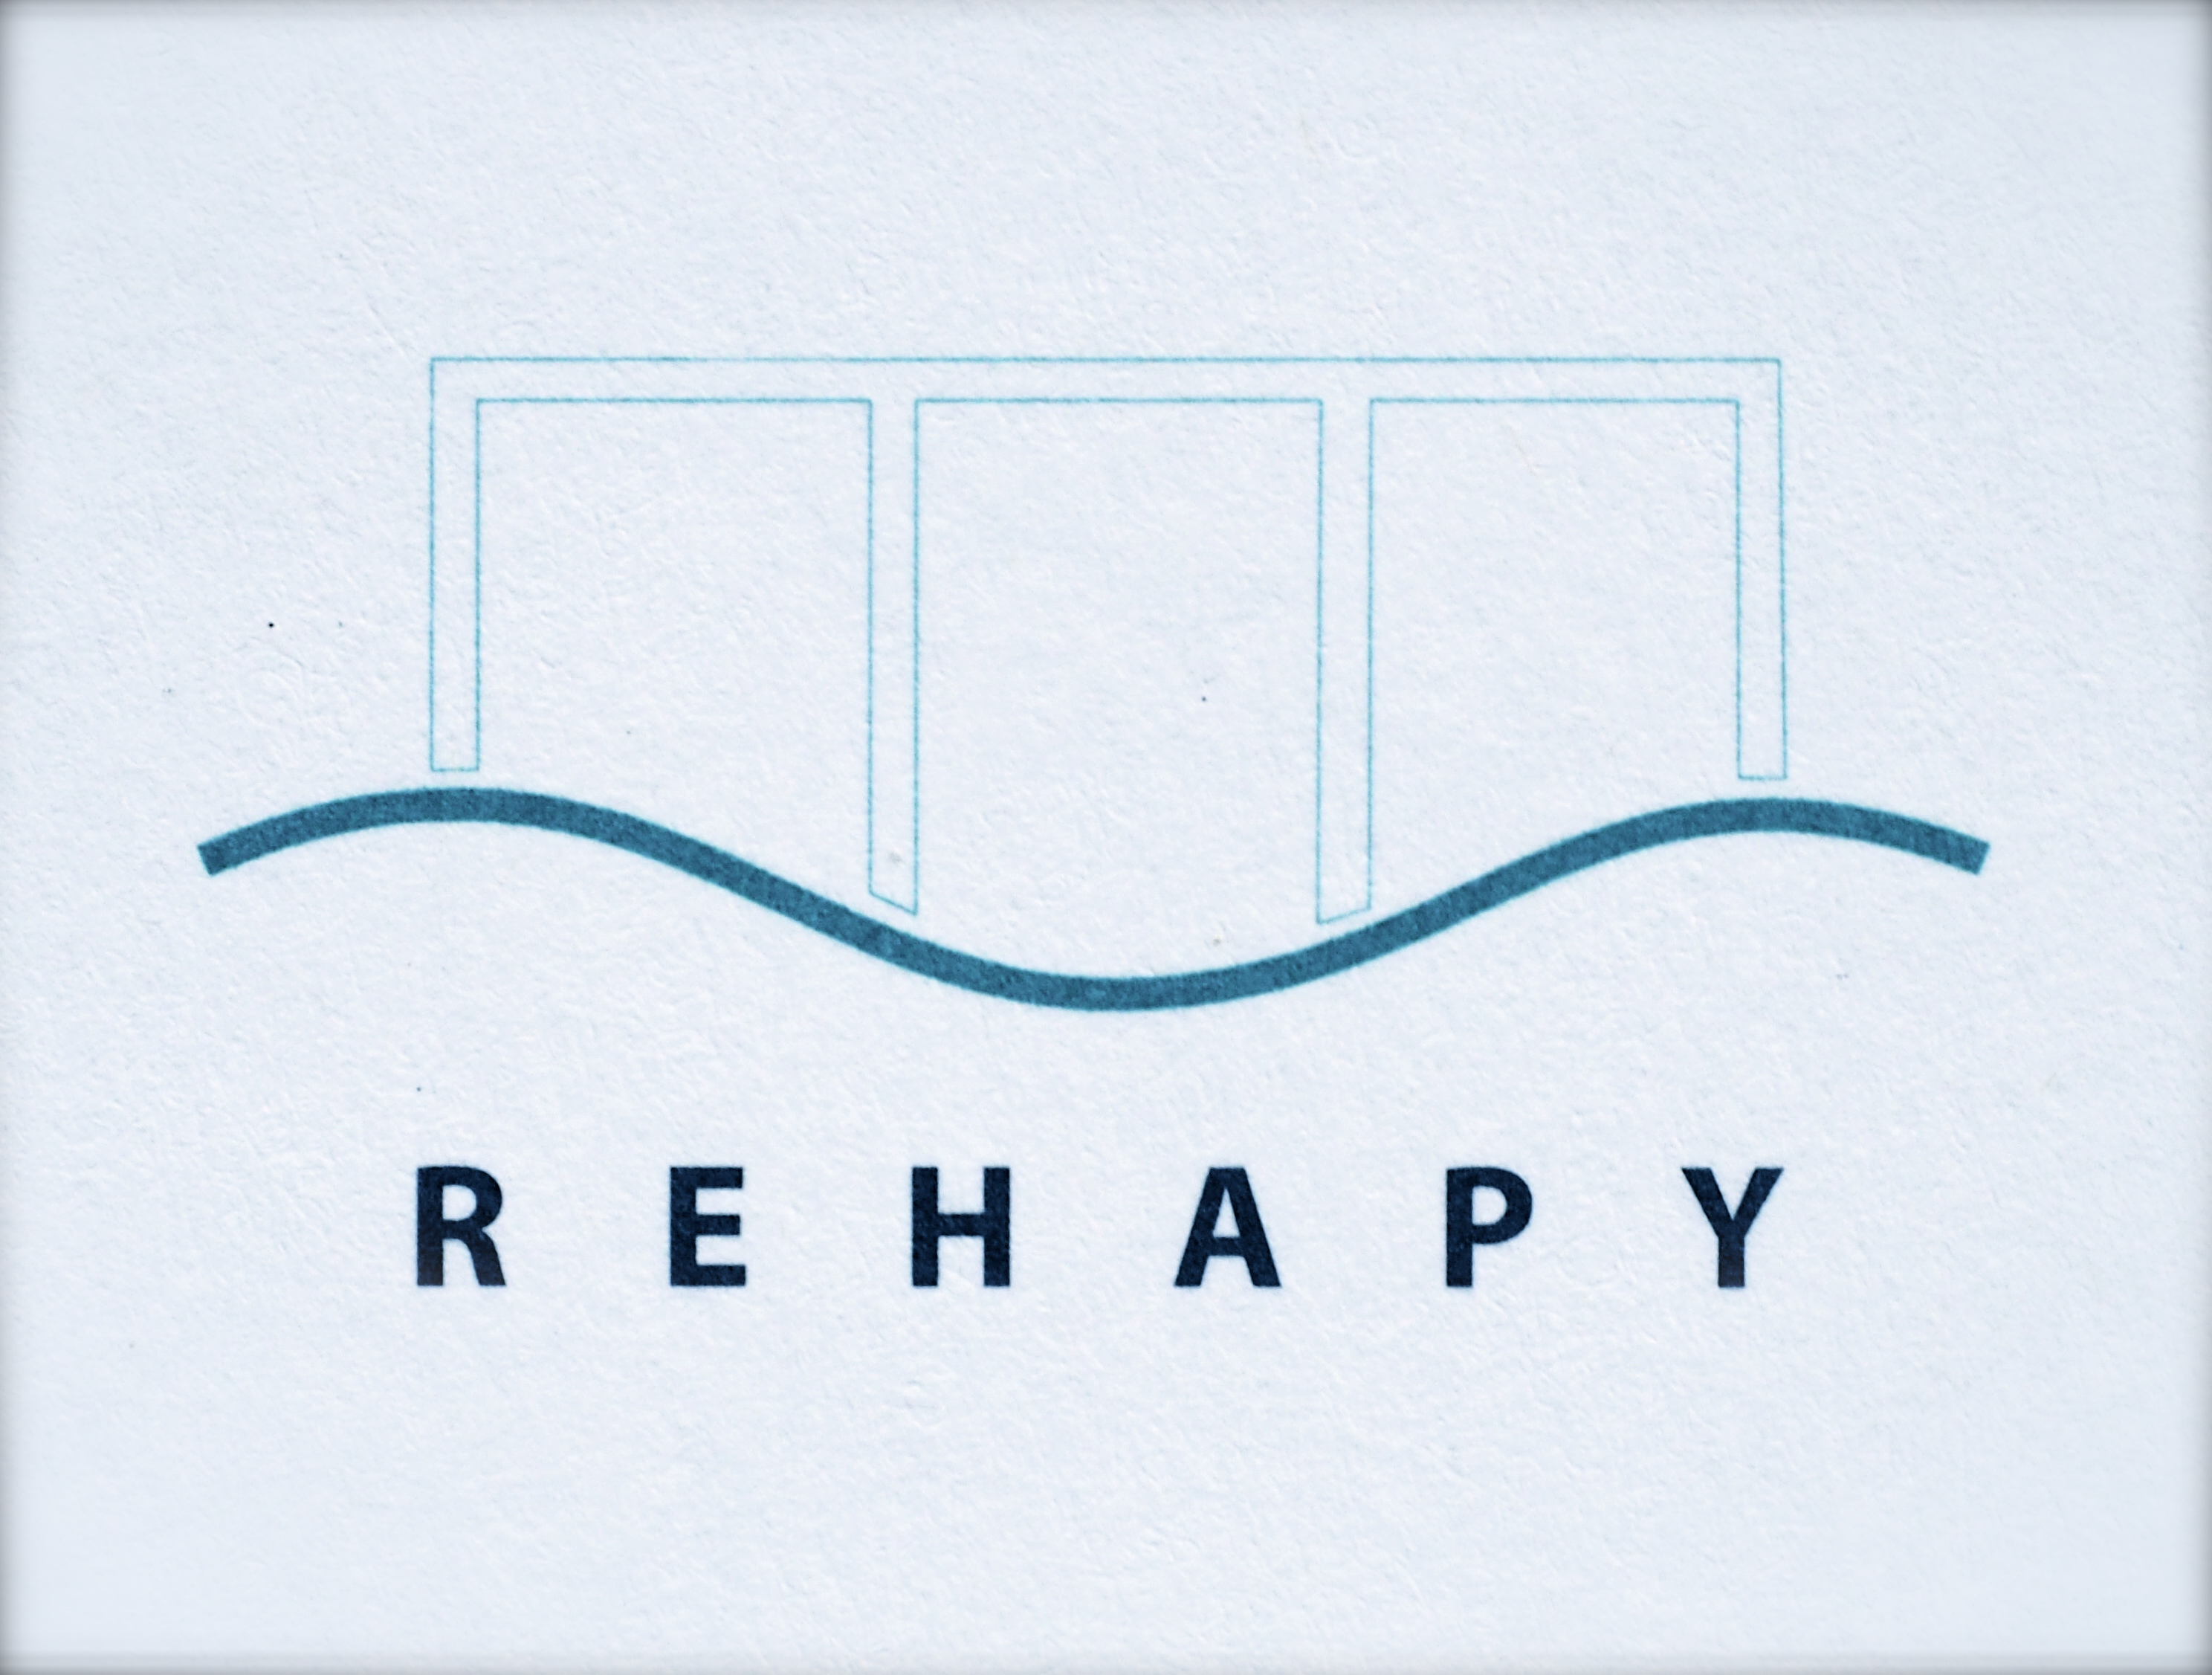 REHAPY - Physiotherapie in München-Harlaching